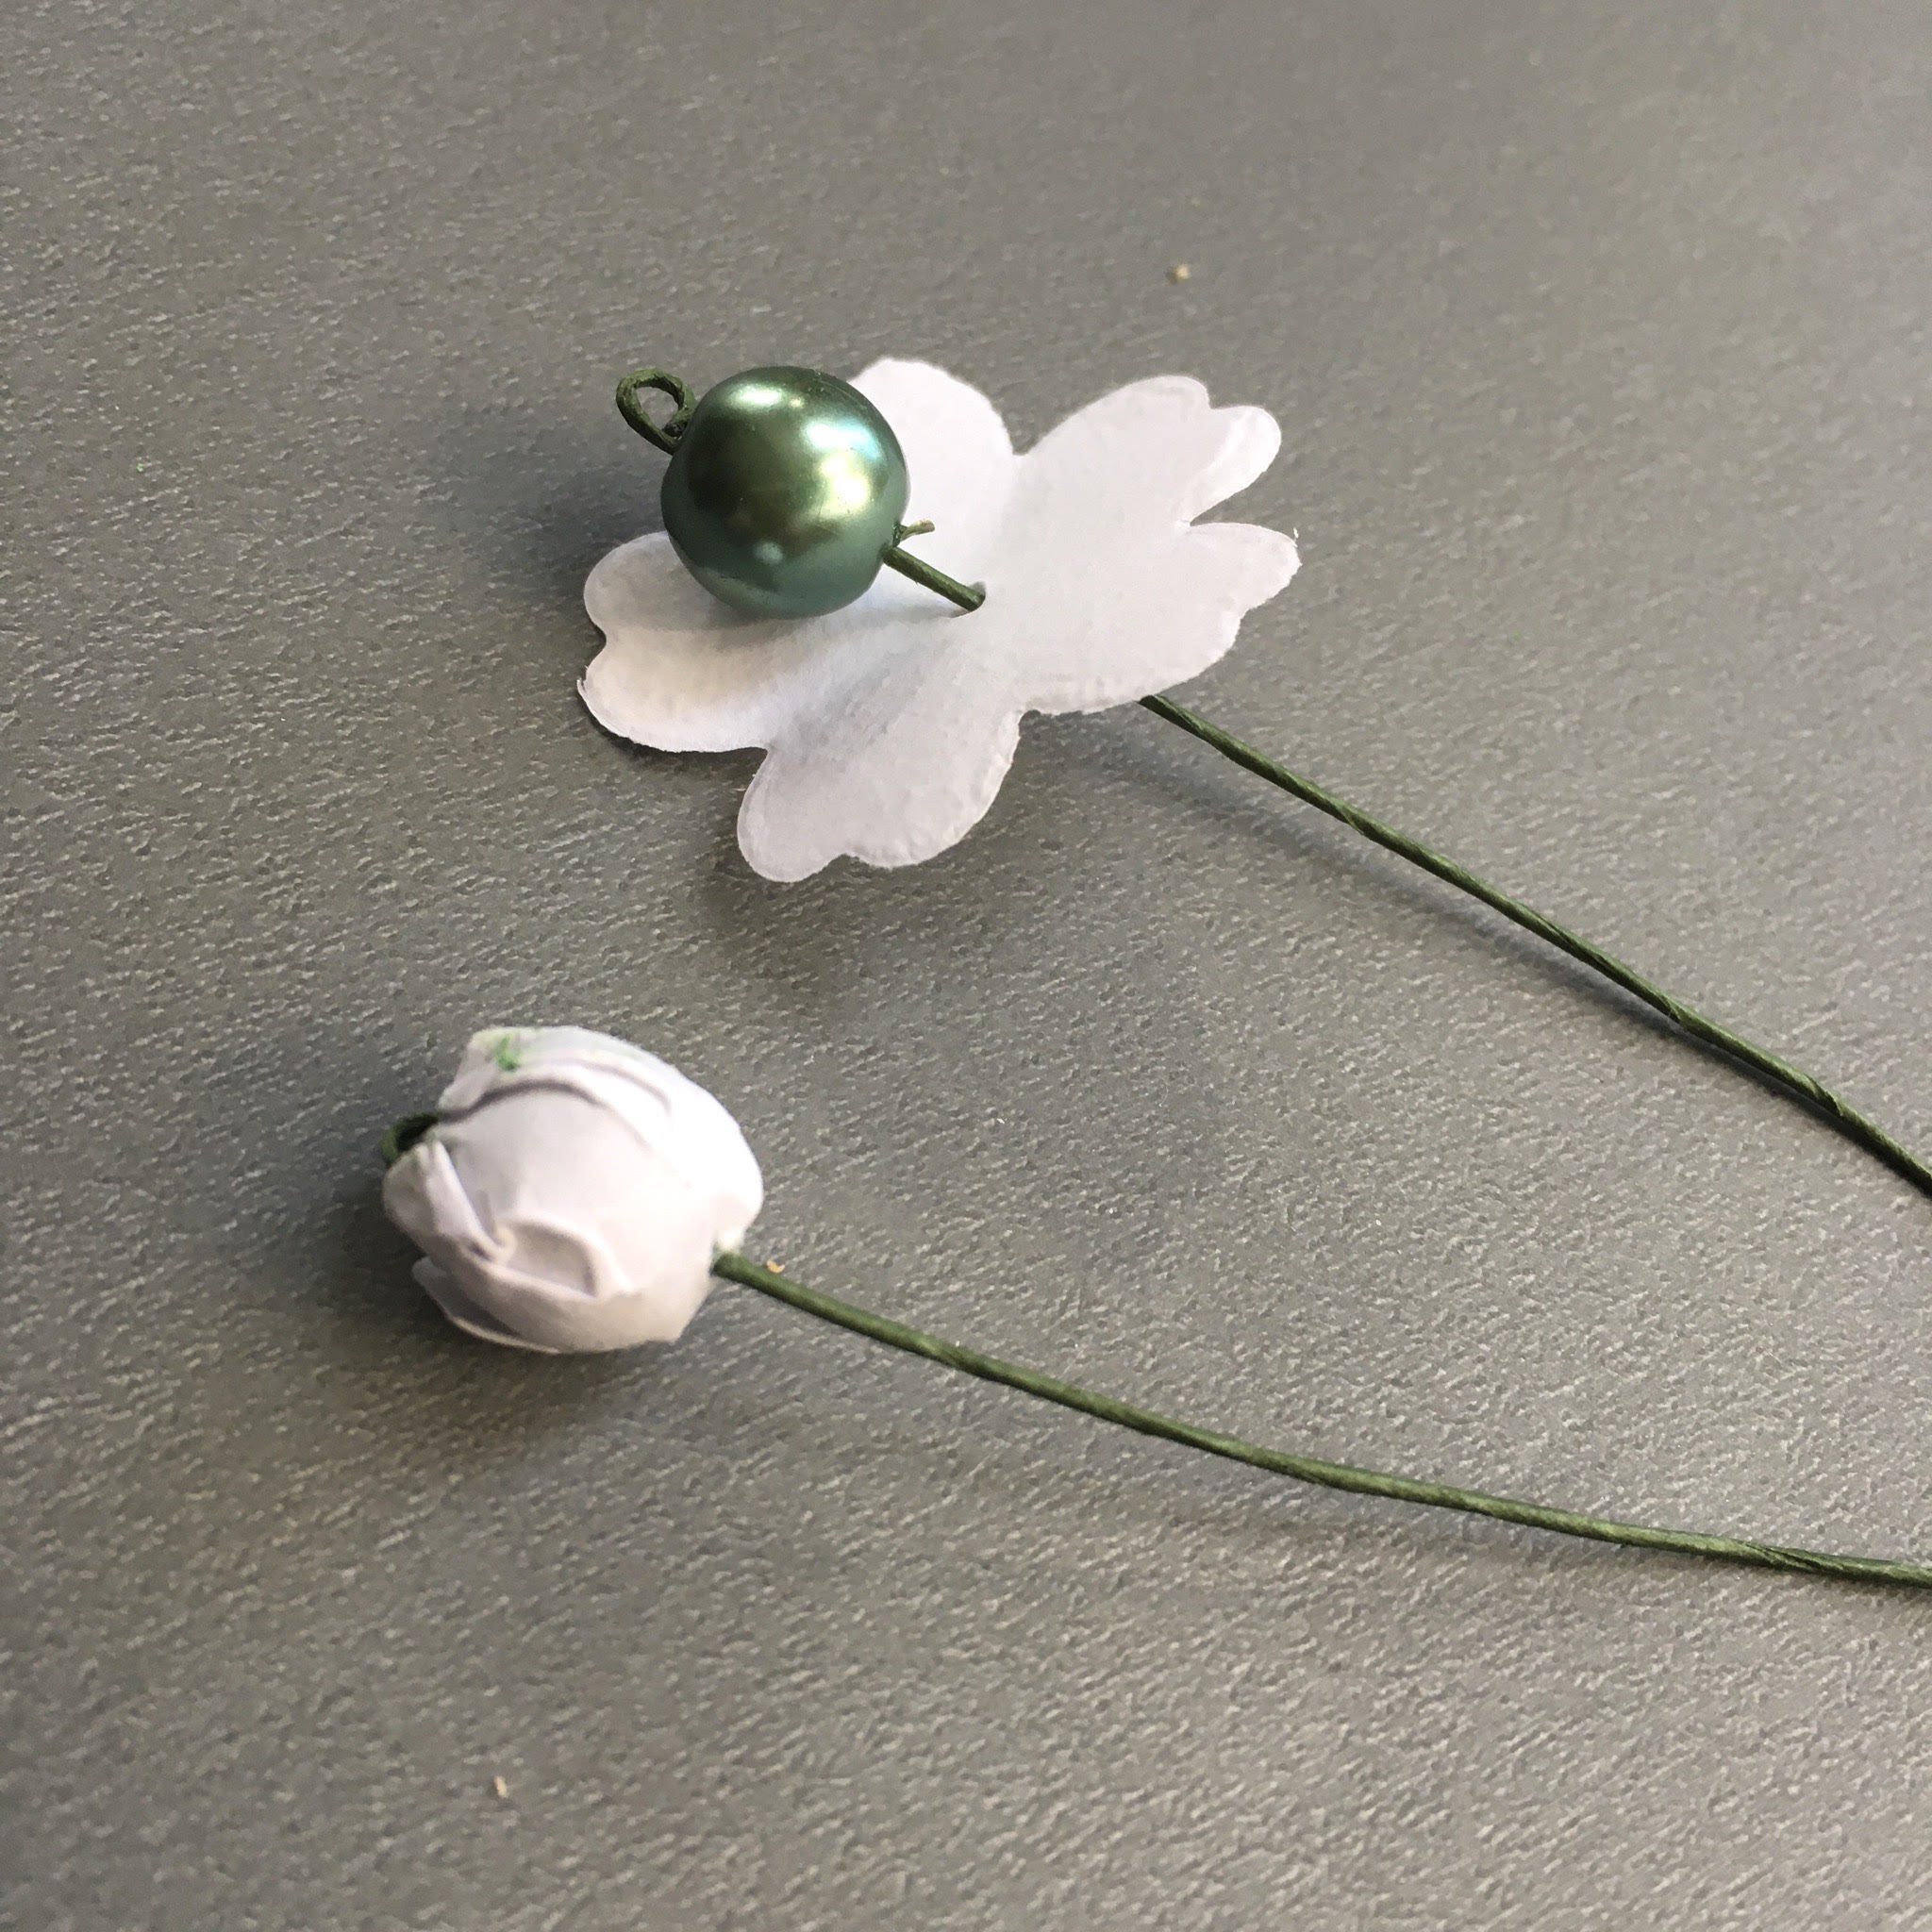 making the flower buds